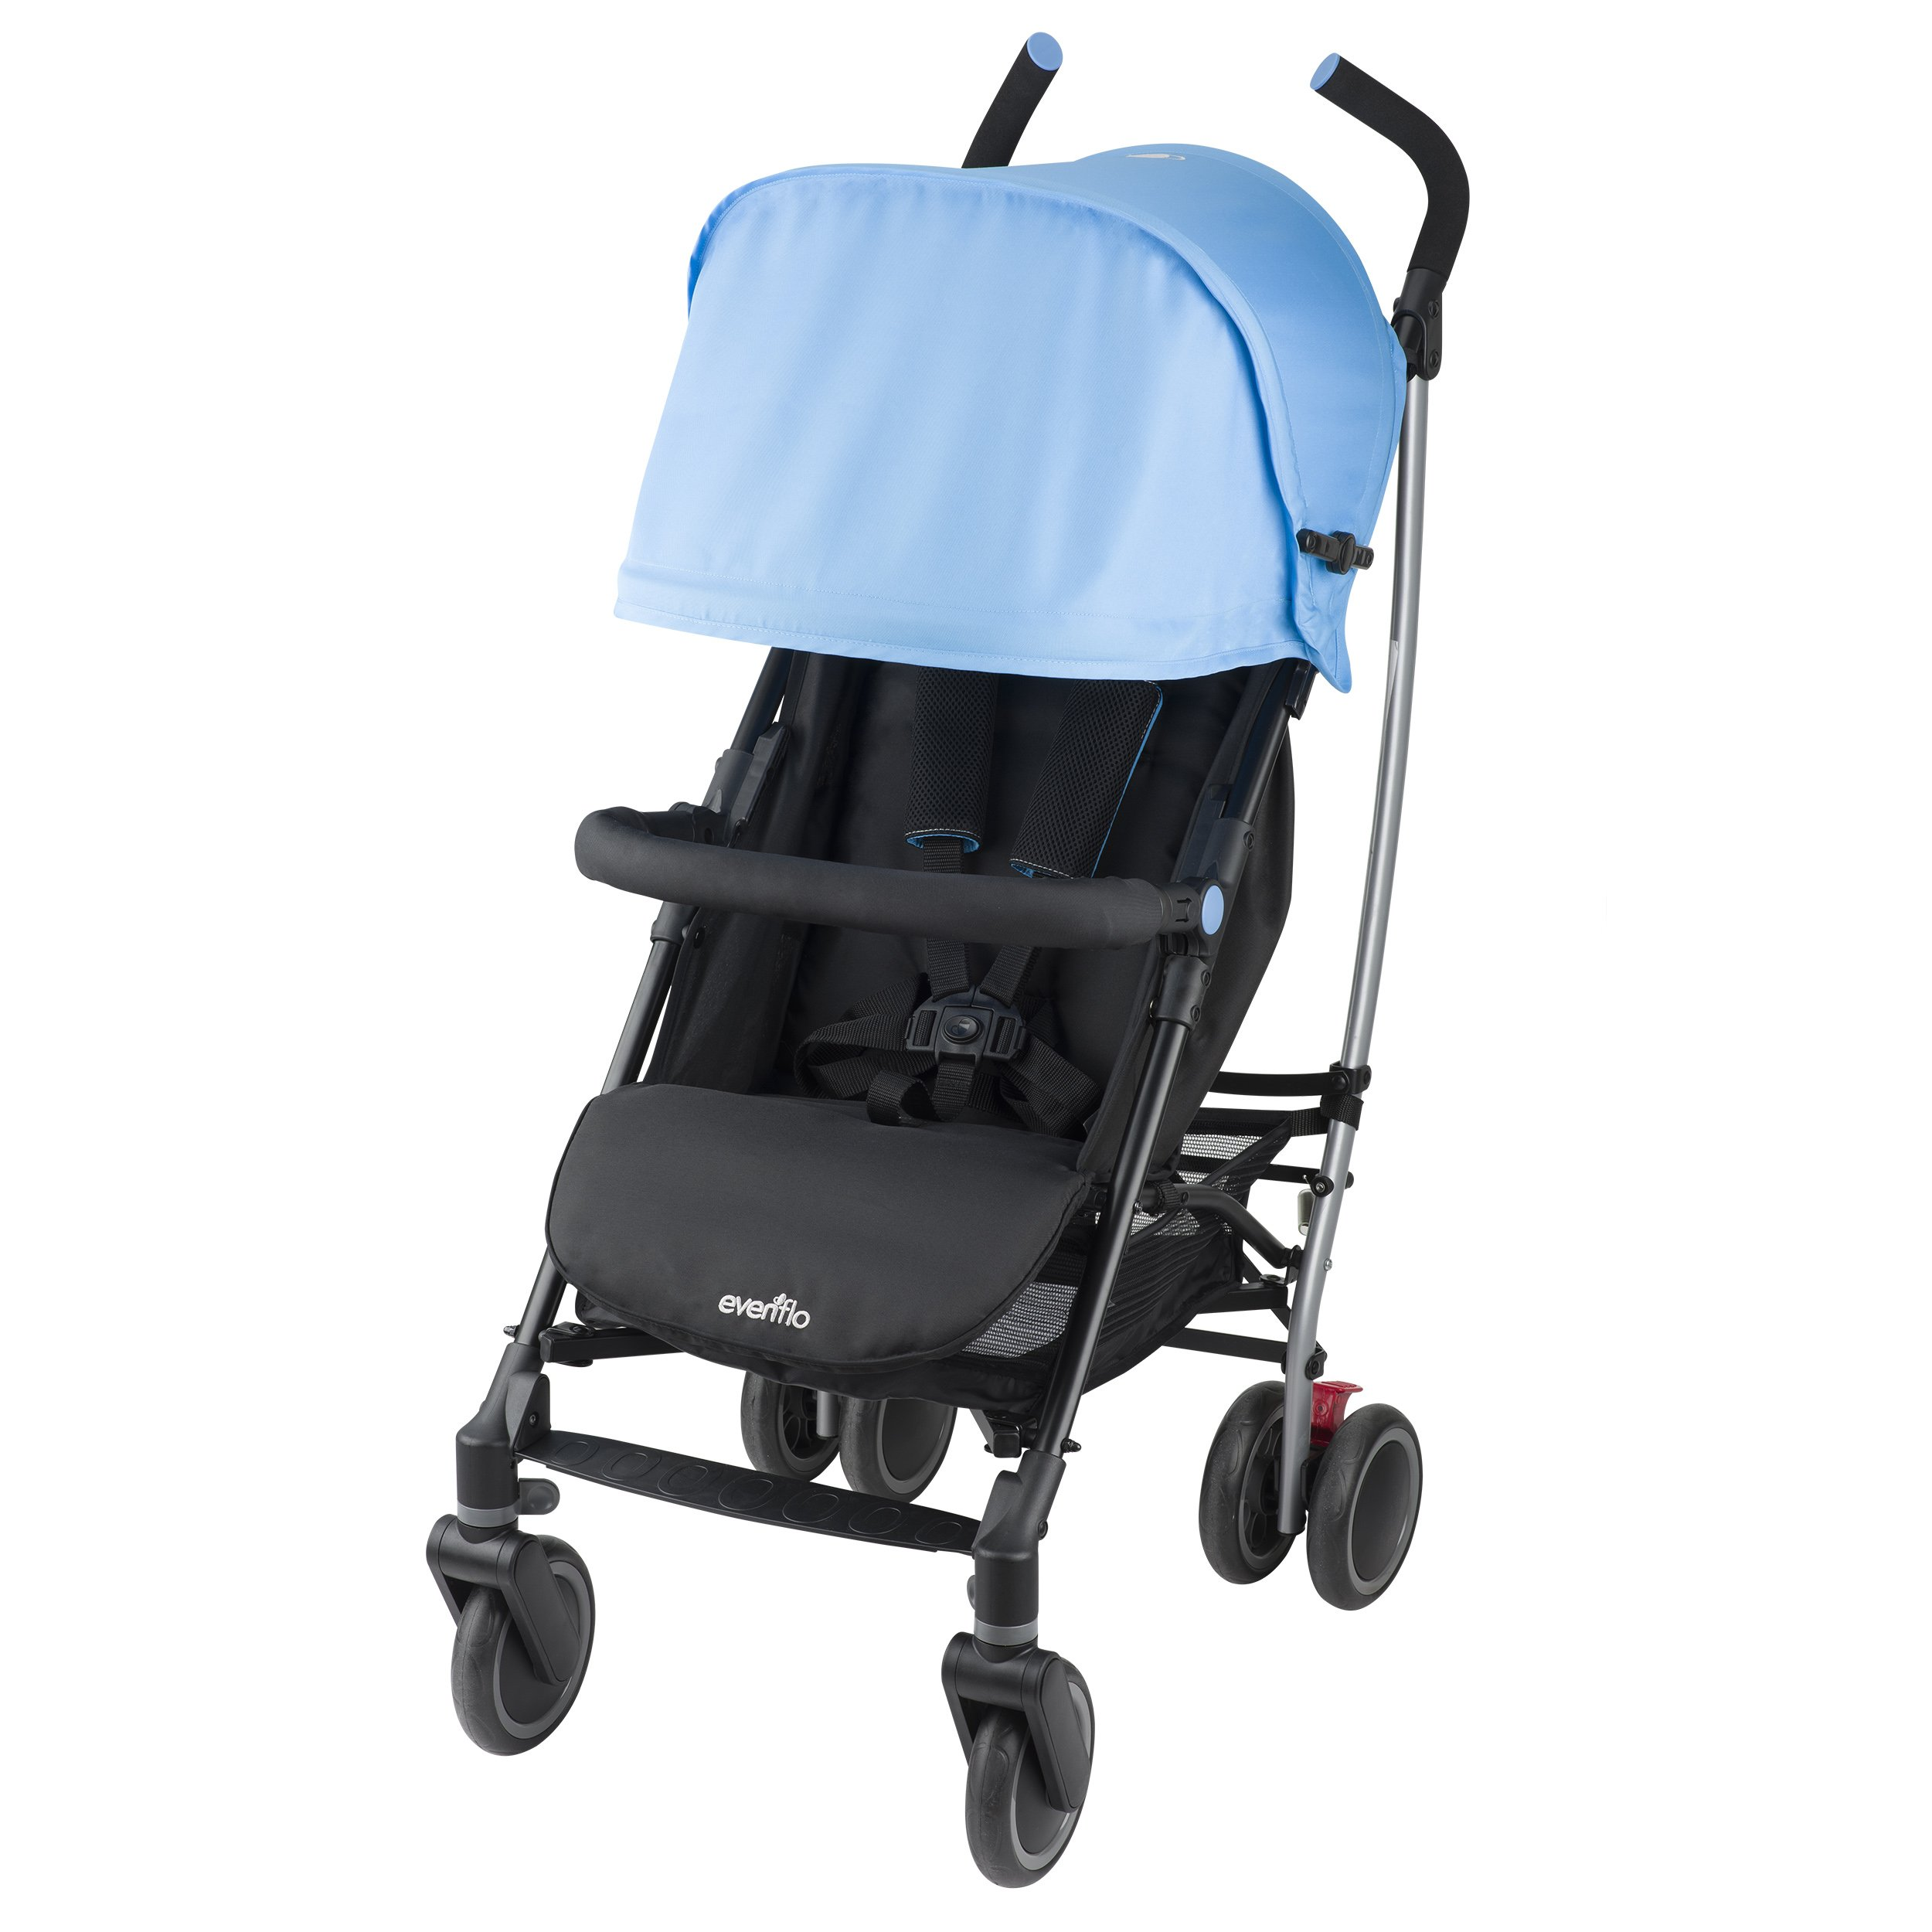 Evenflo Cambridge Stroller, Sky Blue by Evenflo (Image #4)